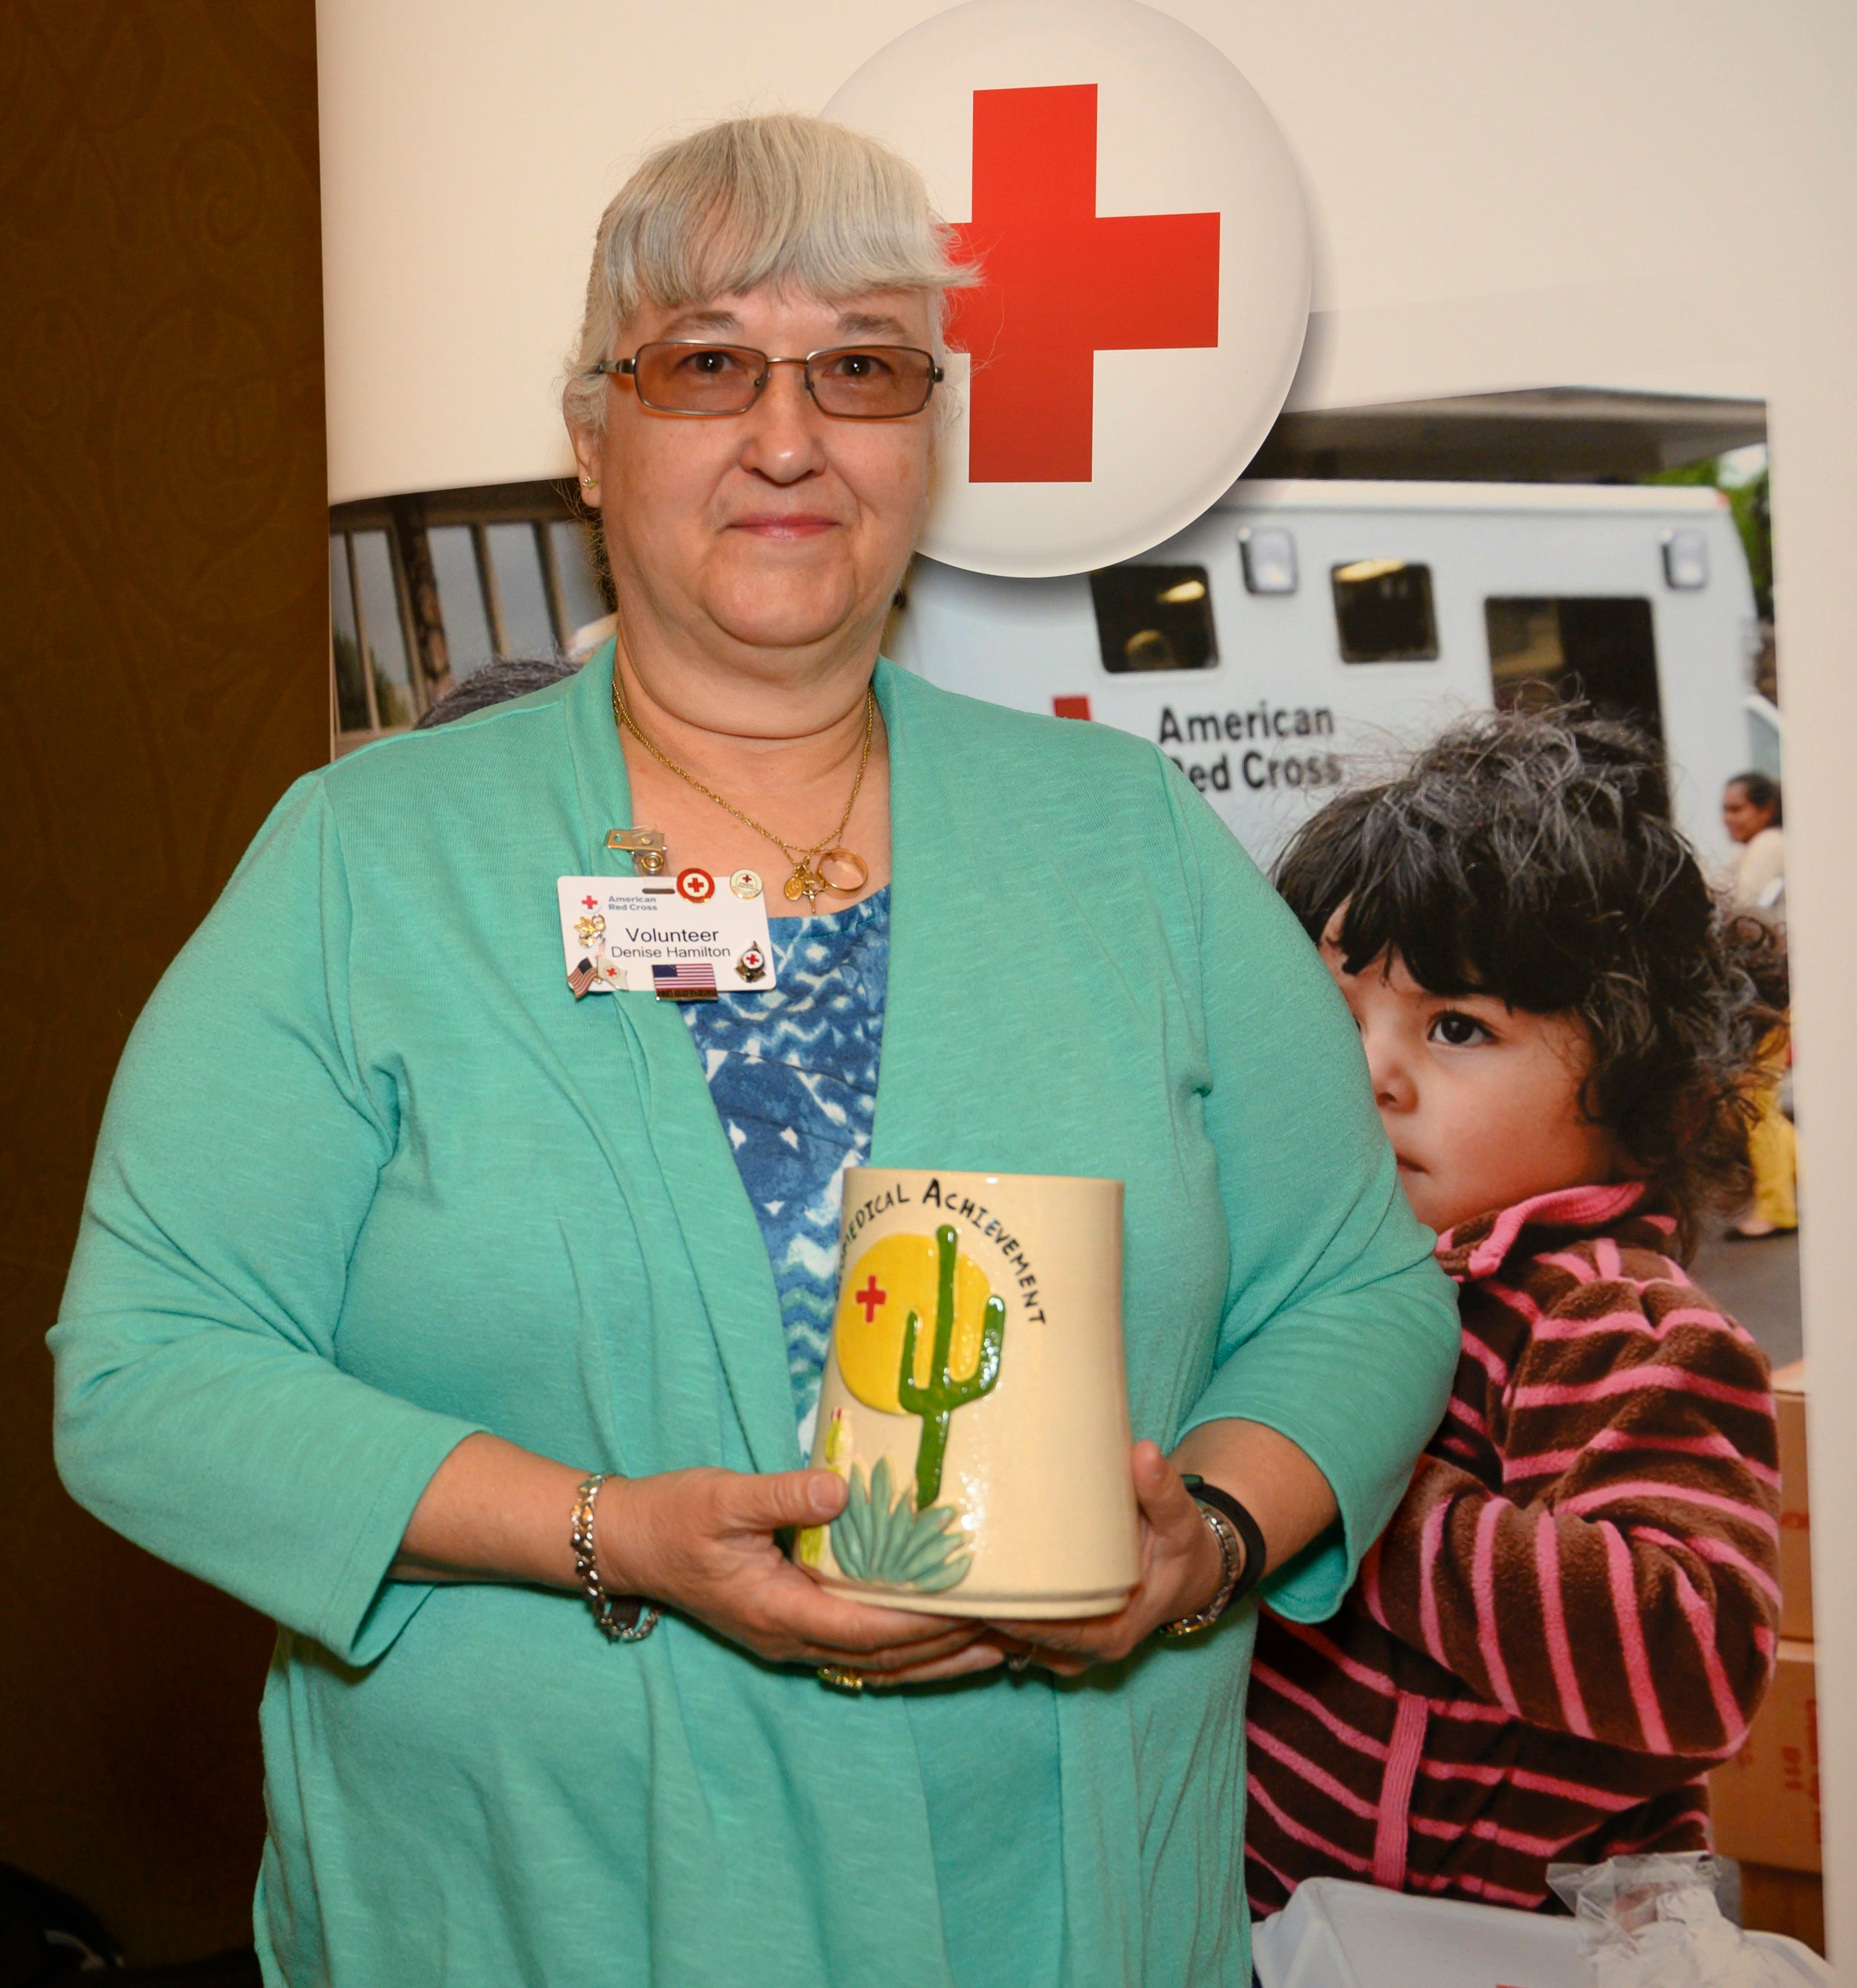 Photo Credit to the American Red Cross